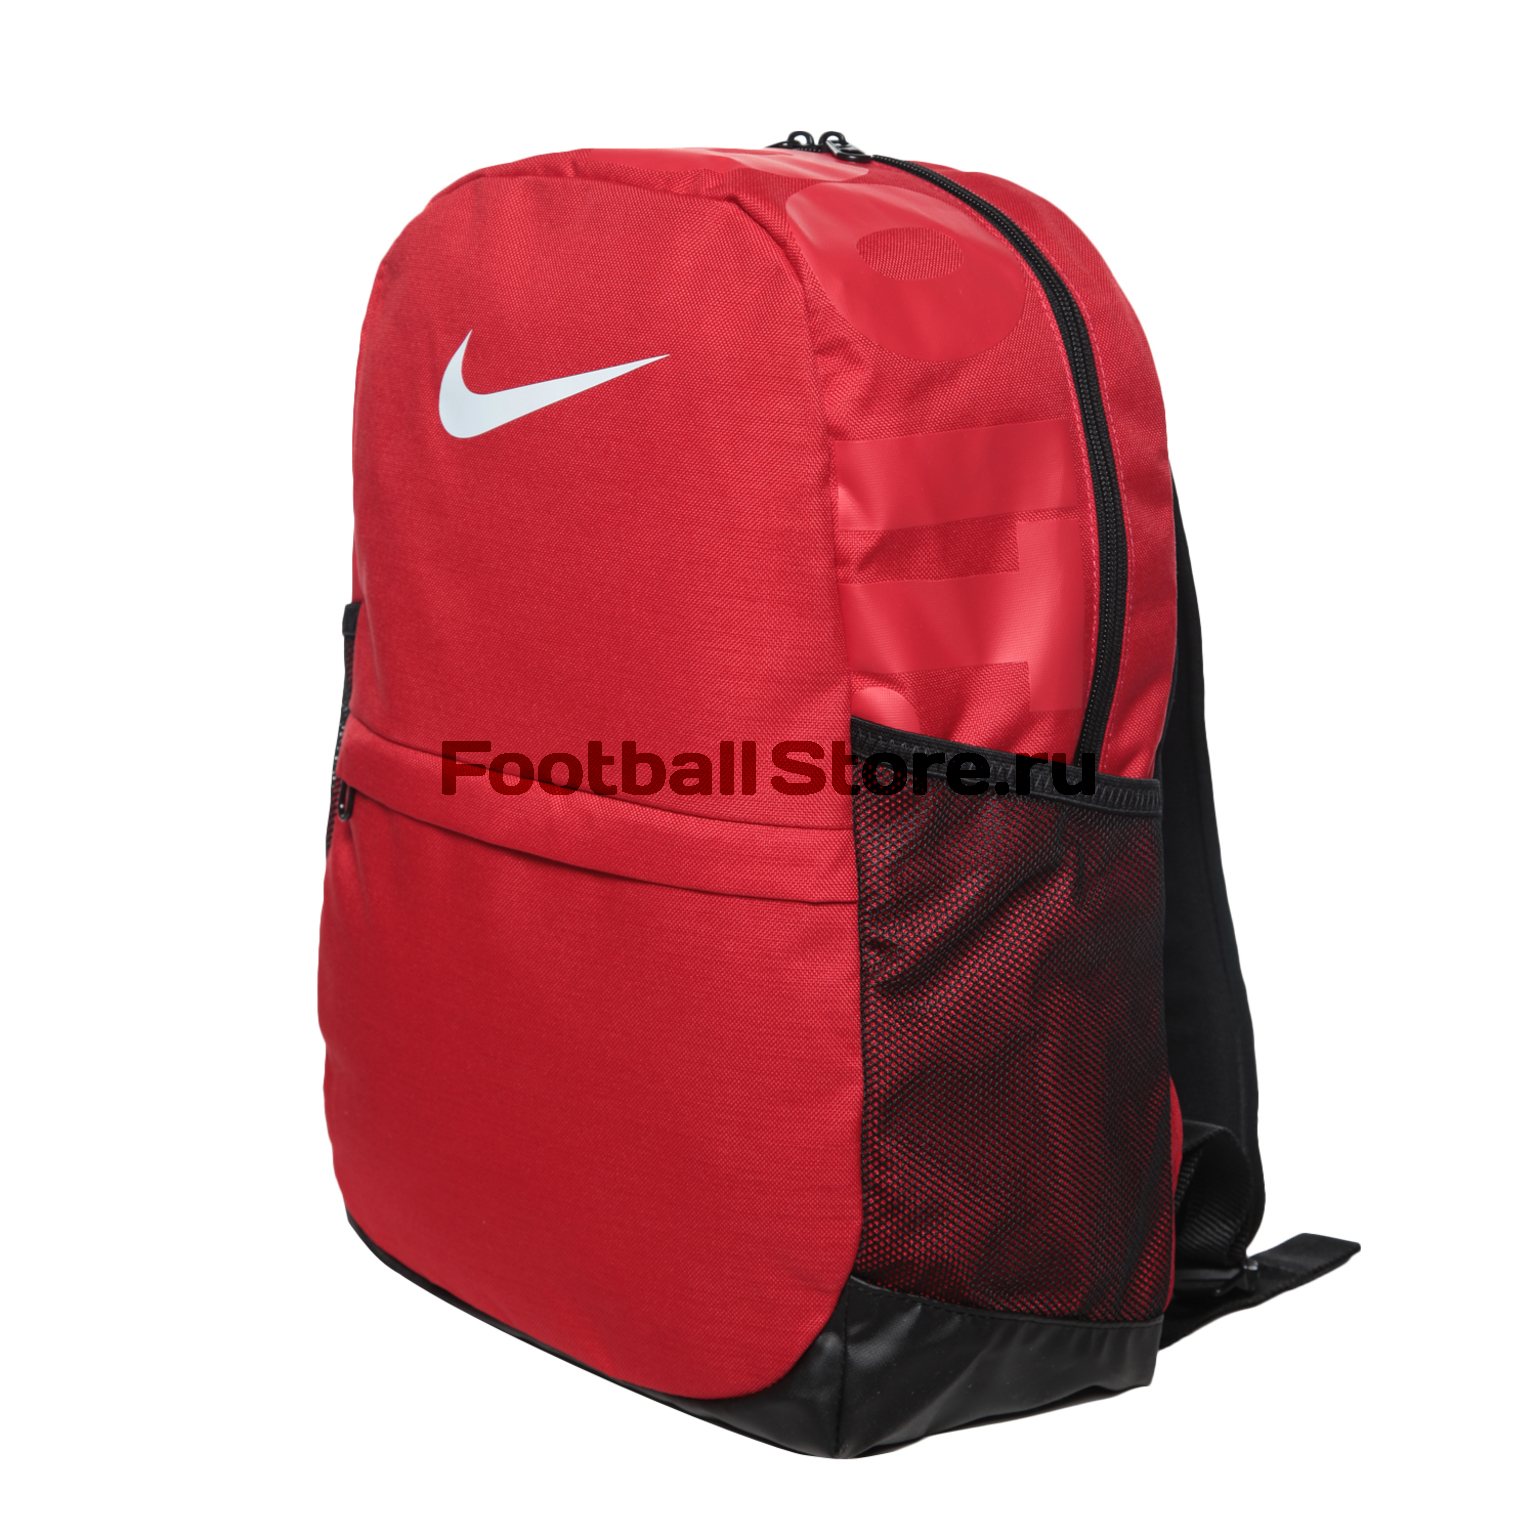 цена Сумки/Рюкзаки Nike Рюкзак детский Nike Brasilia Backpack BA5473-657 онлайн в 2017 году